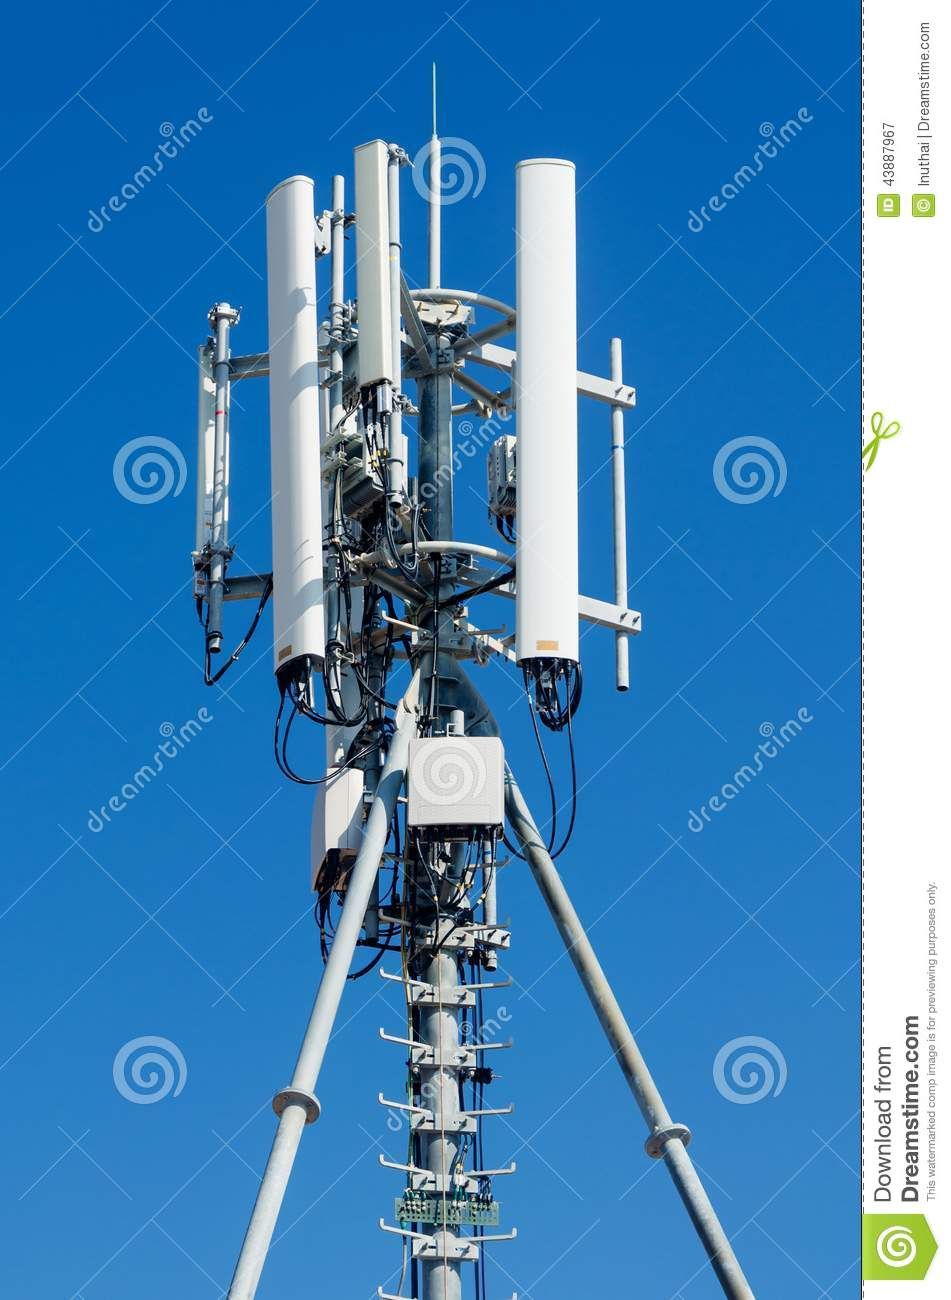 Mobile Phone Network Antenna Stock Image - Image of operator, site